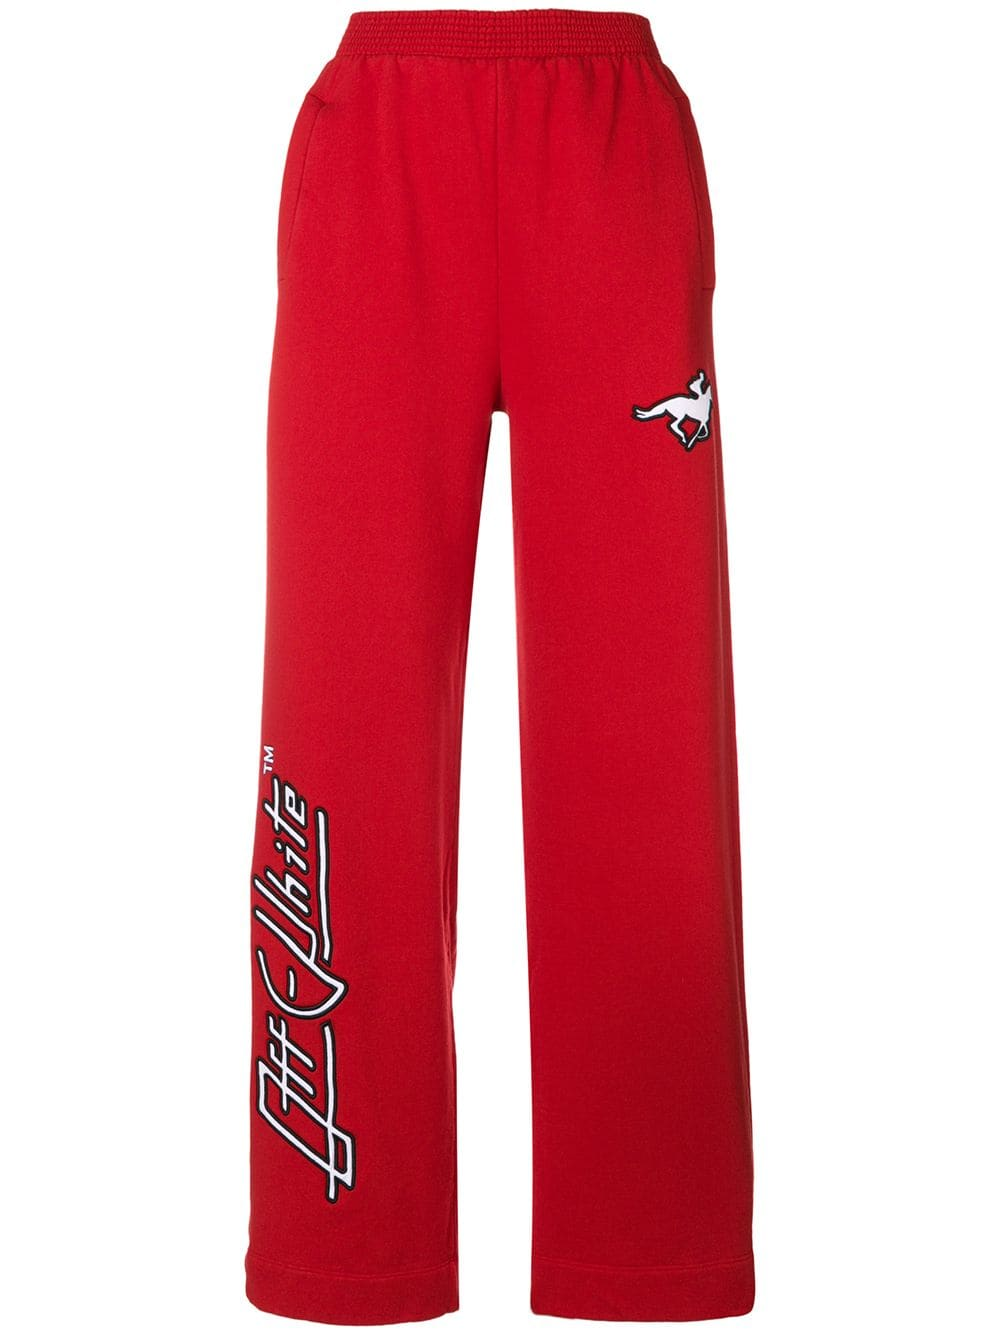 Off-White   High Waist Red Pant